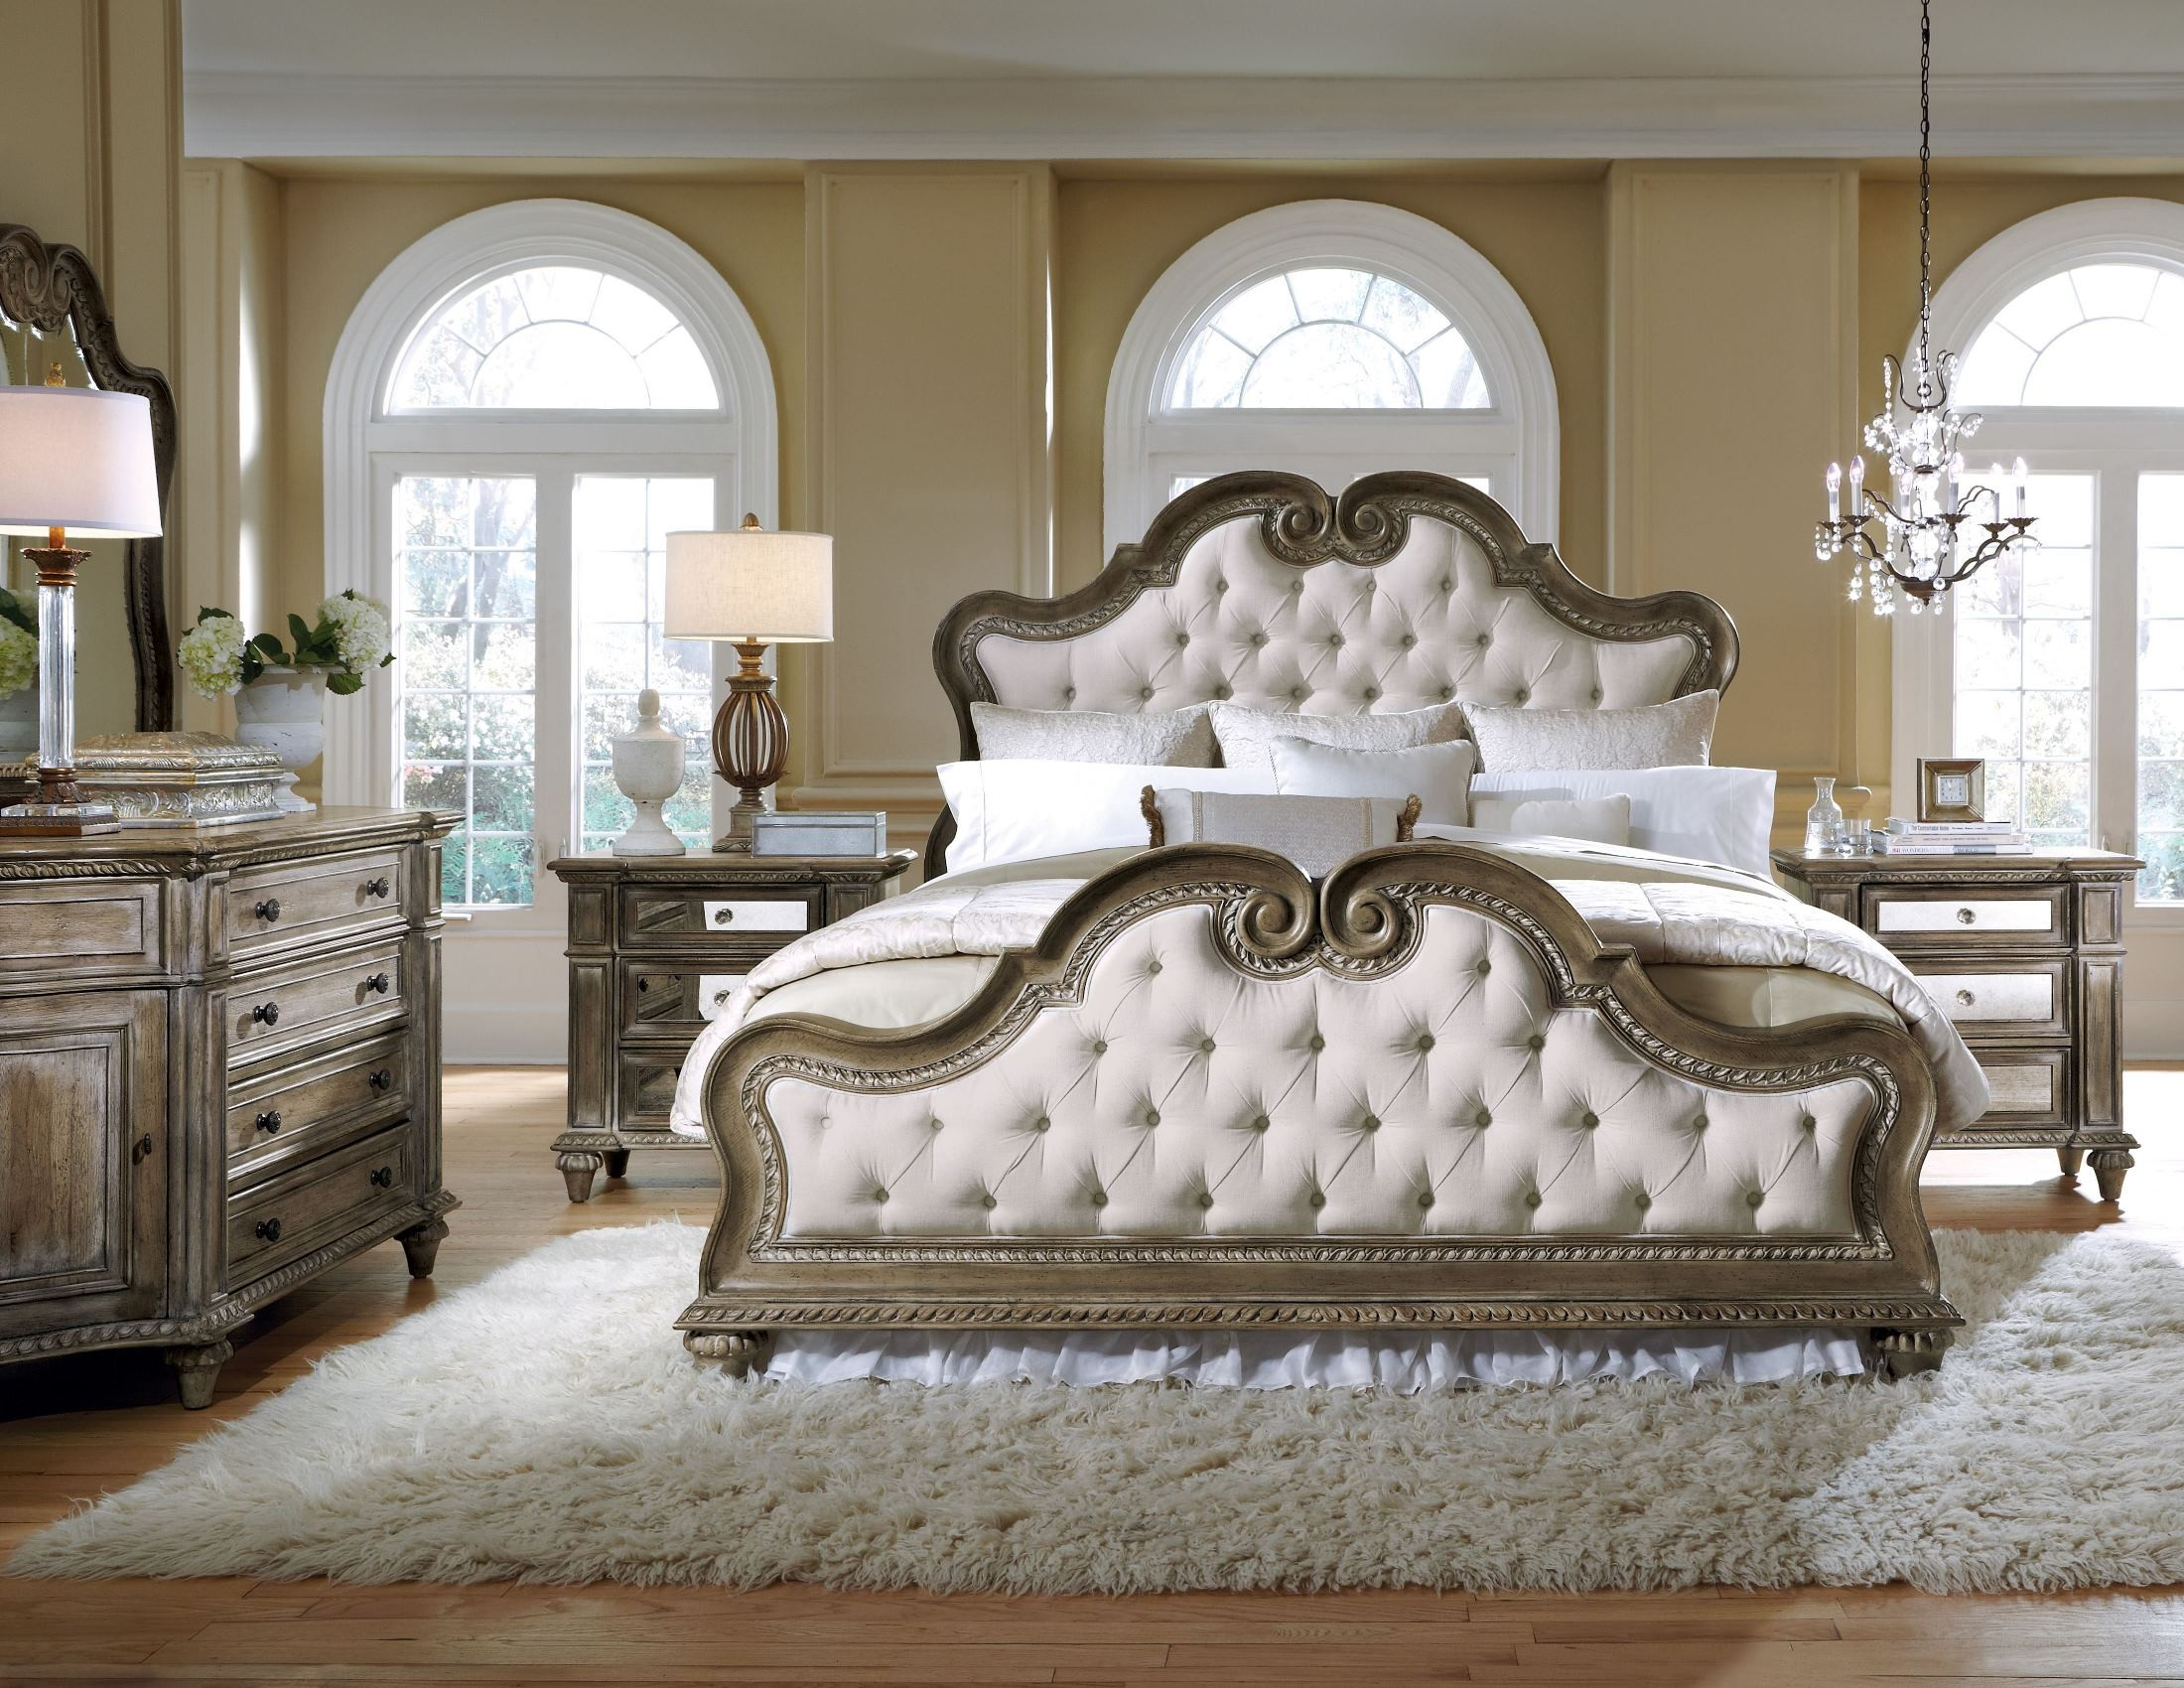 Arabella Upholstered Bedroom Set From Pulaski (211170